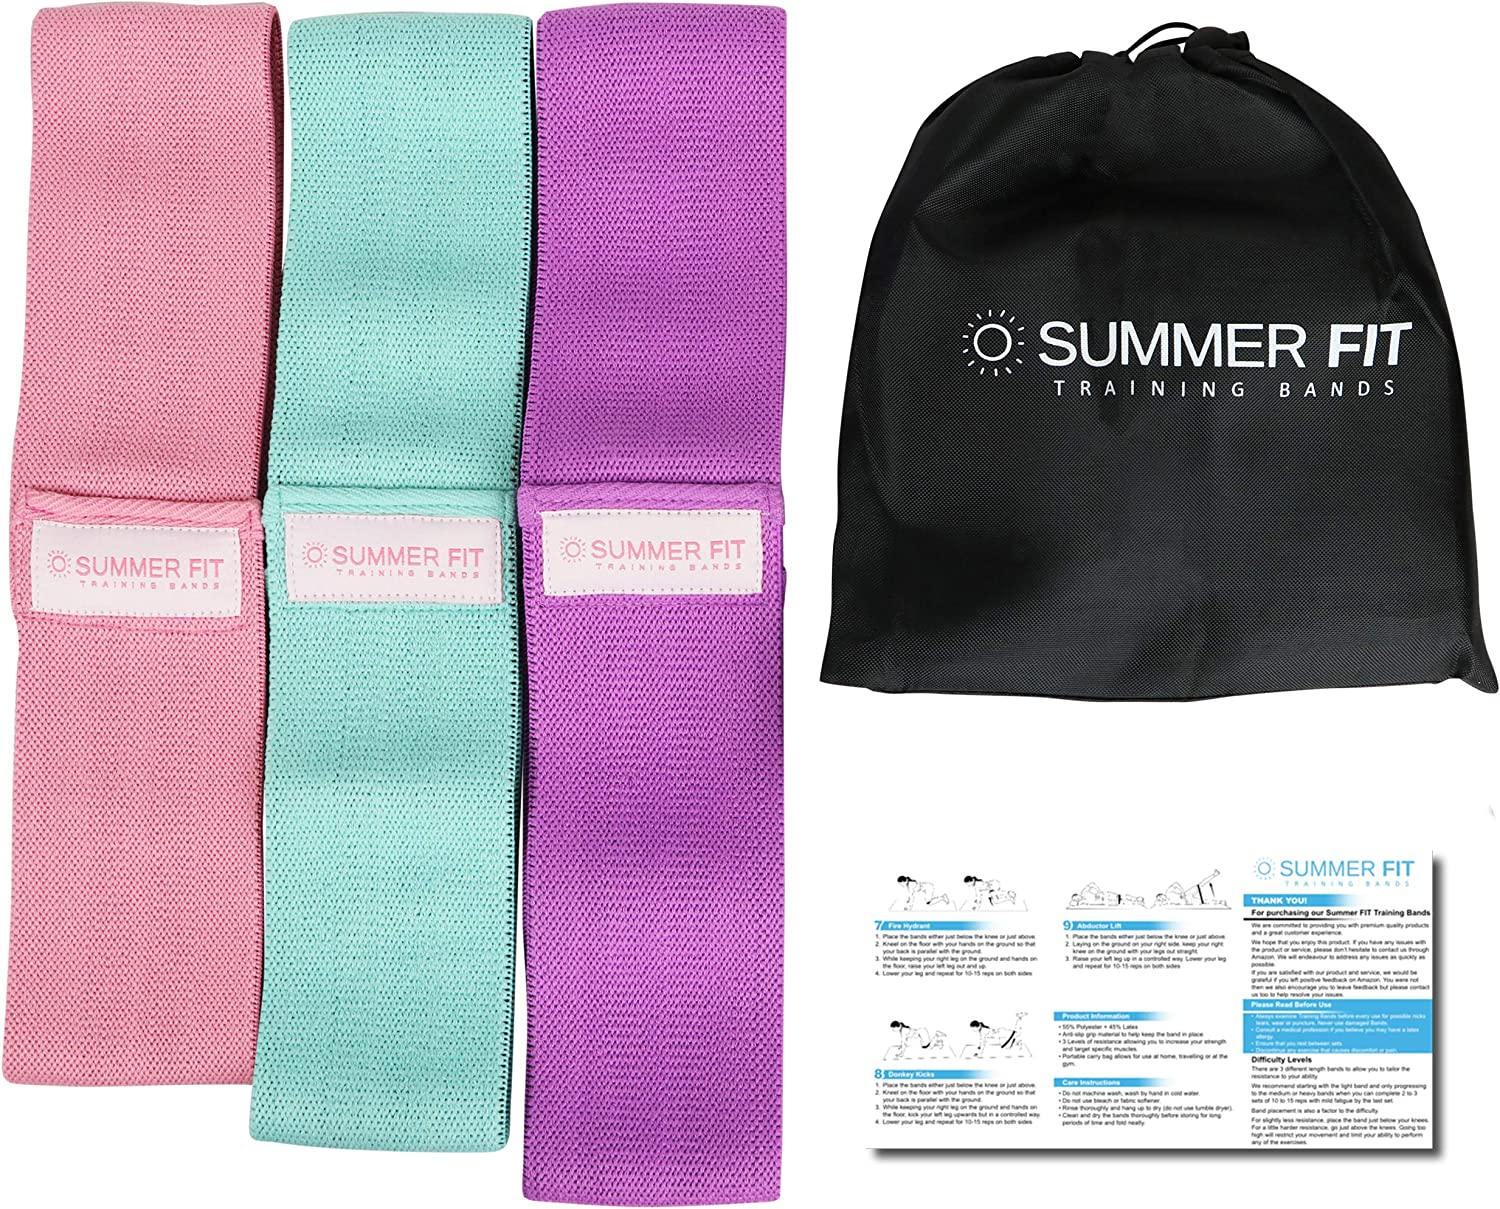 Summer FIT Resistance Bands Thick Design is Hard to Break 3 Non Slip Fabric Hip Bands for Intense Workout of Legs Thighs Butt Glute and Booty Hip Circle Loop is Portable and Easy to Use